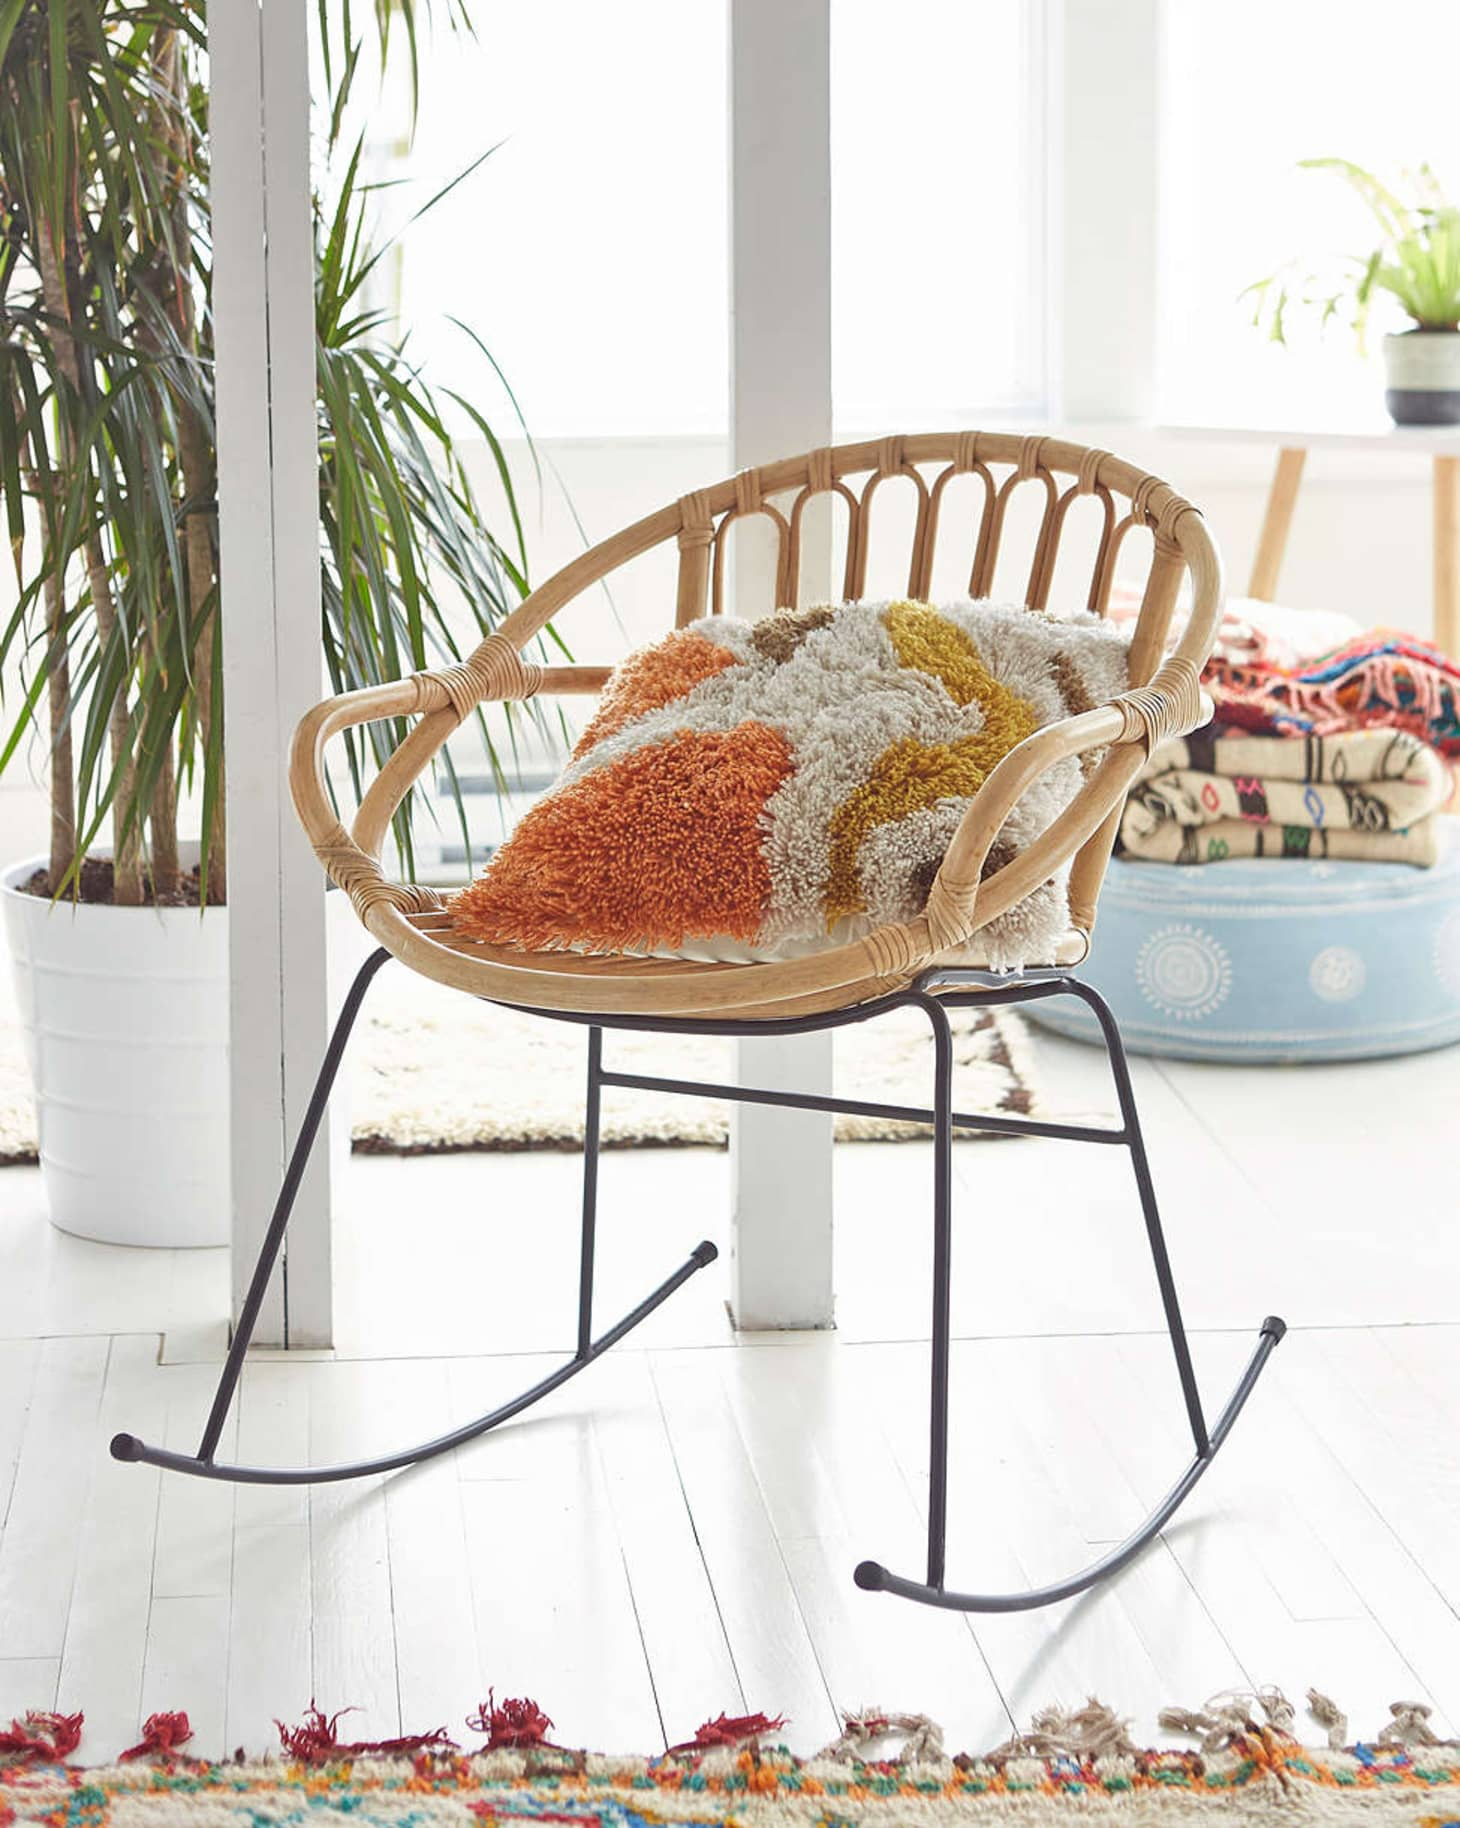 12 Really Good Looking Wicker & Rattan Chairs   Apartment Therapy